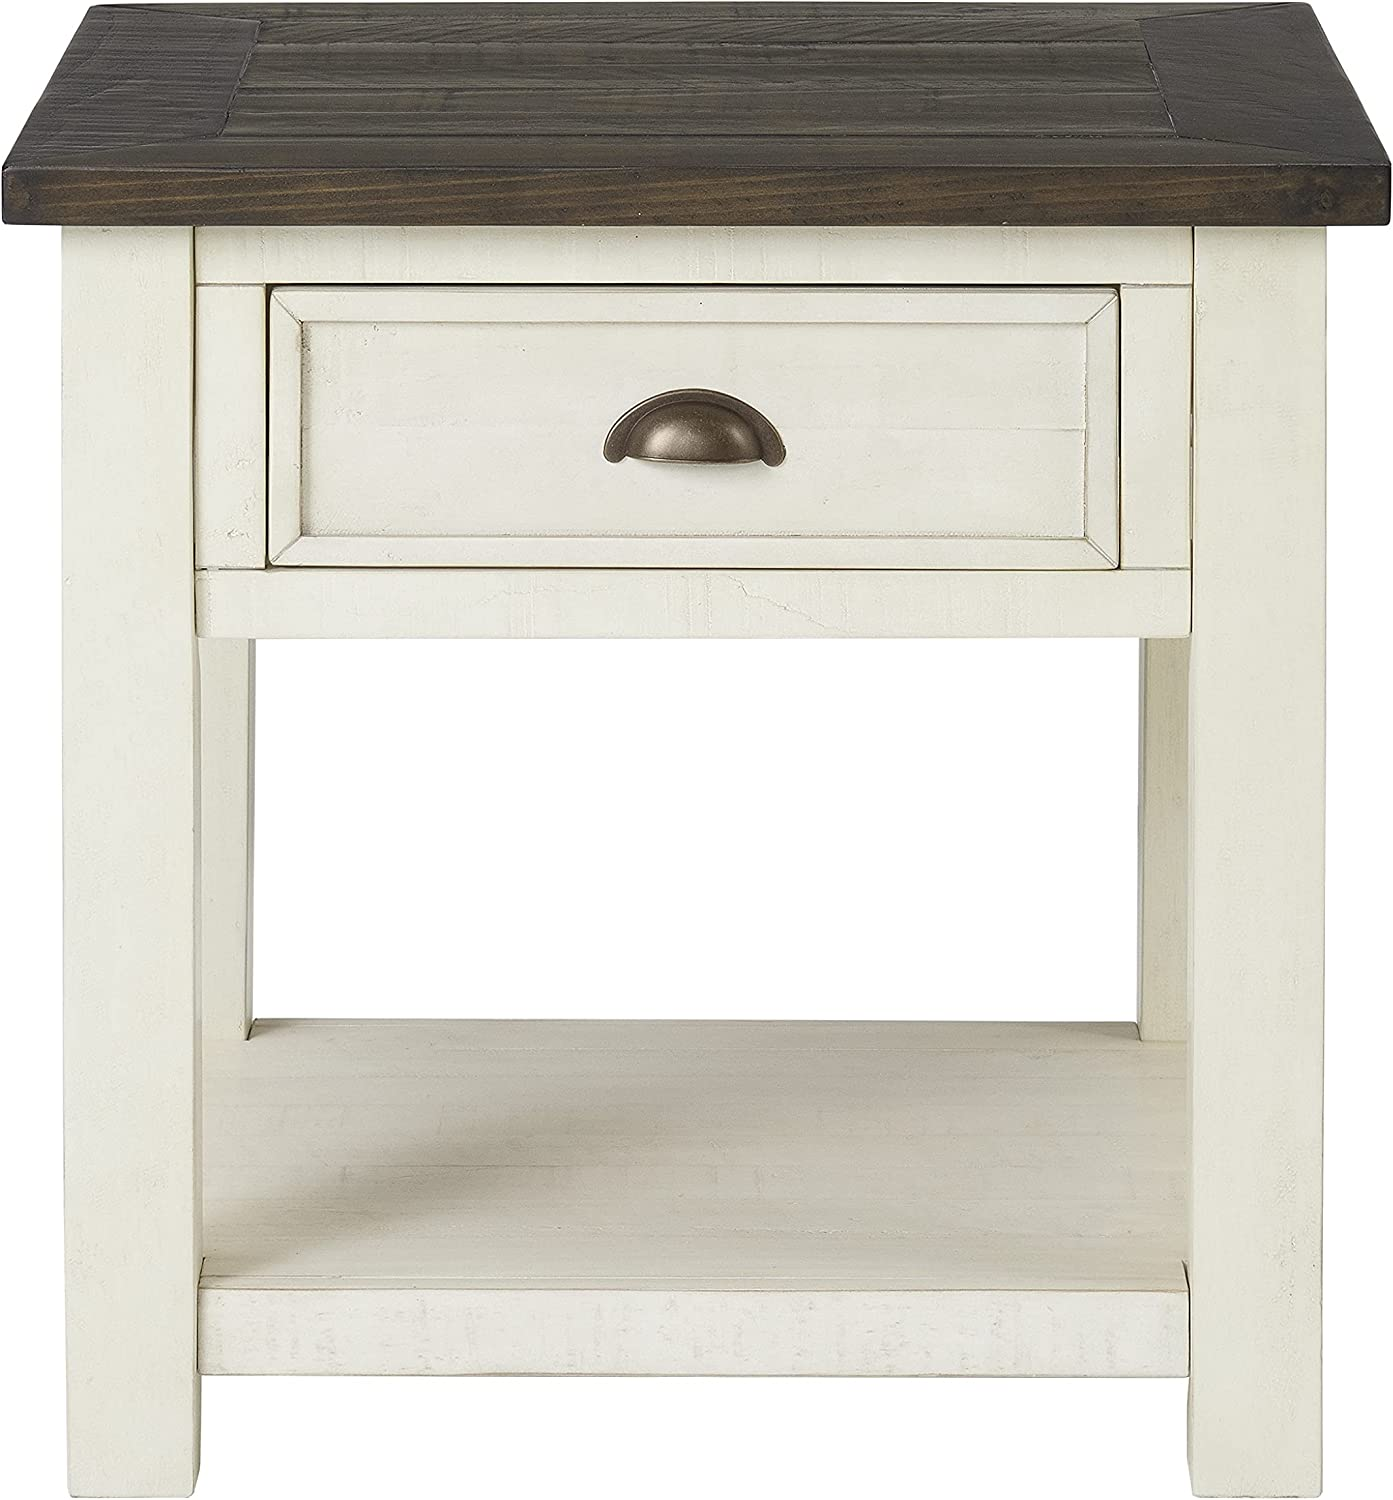 Martin Rare Svensson Home Solid Wood End Table White Brow Portland Mall Cream with